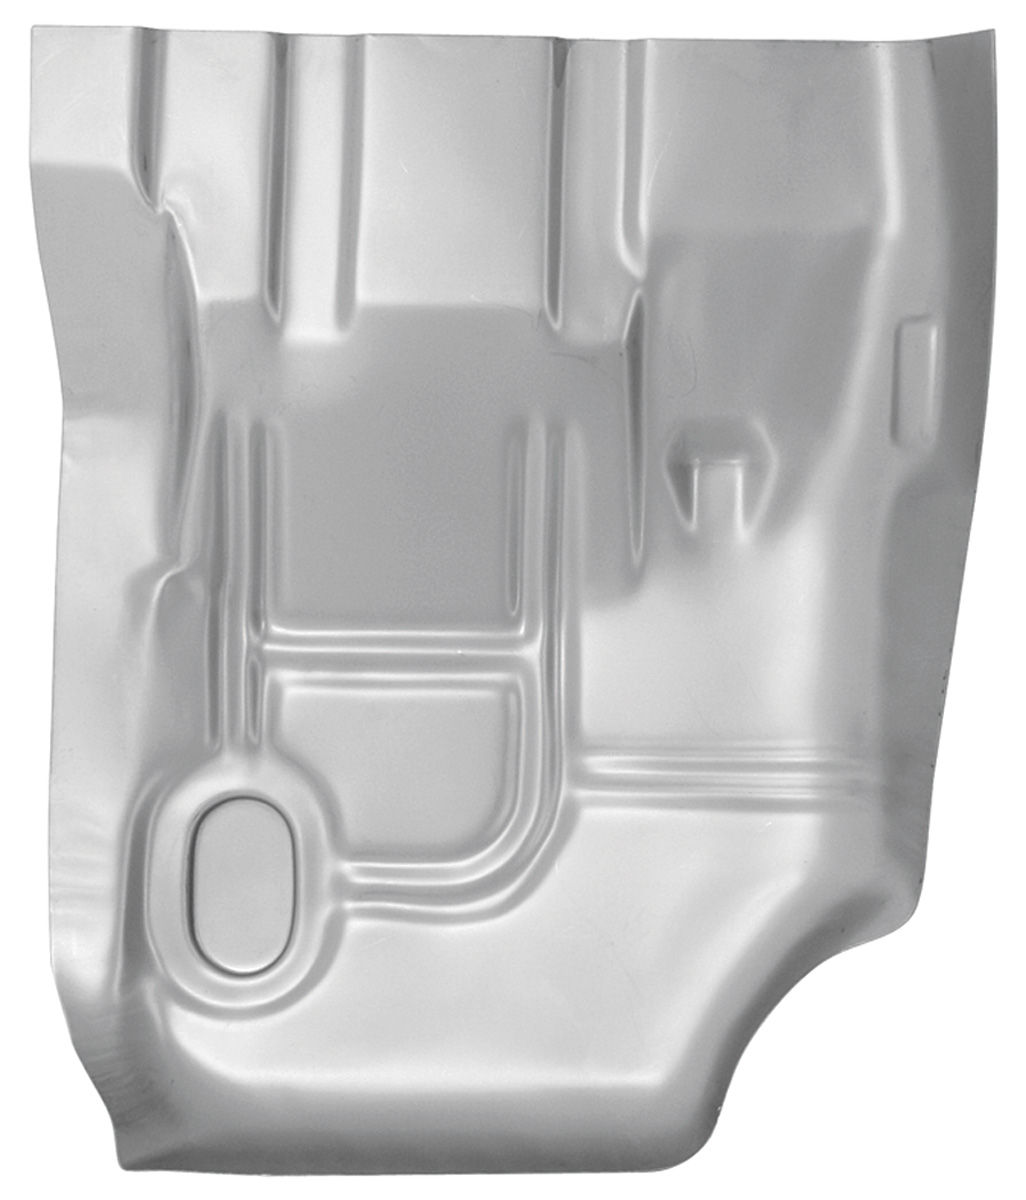 1973 77 Monte Carlo Floor Pan Sections Steel Rear For